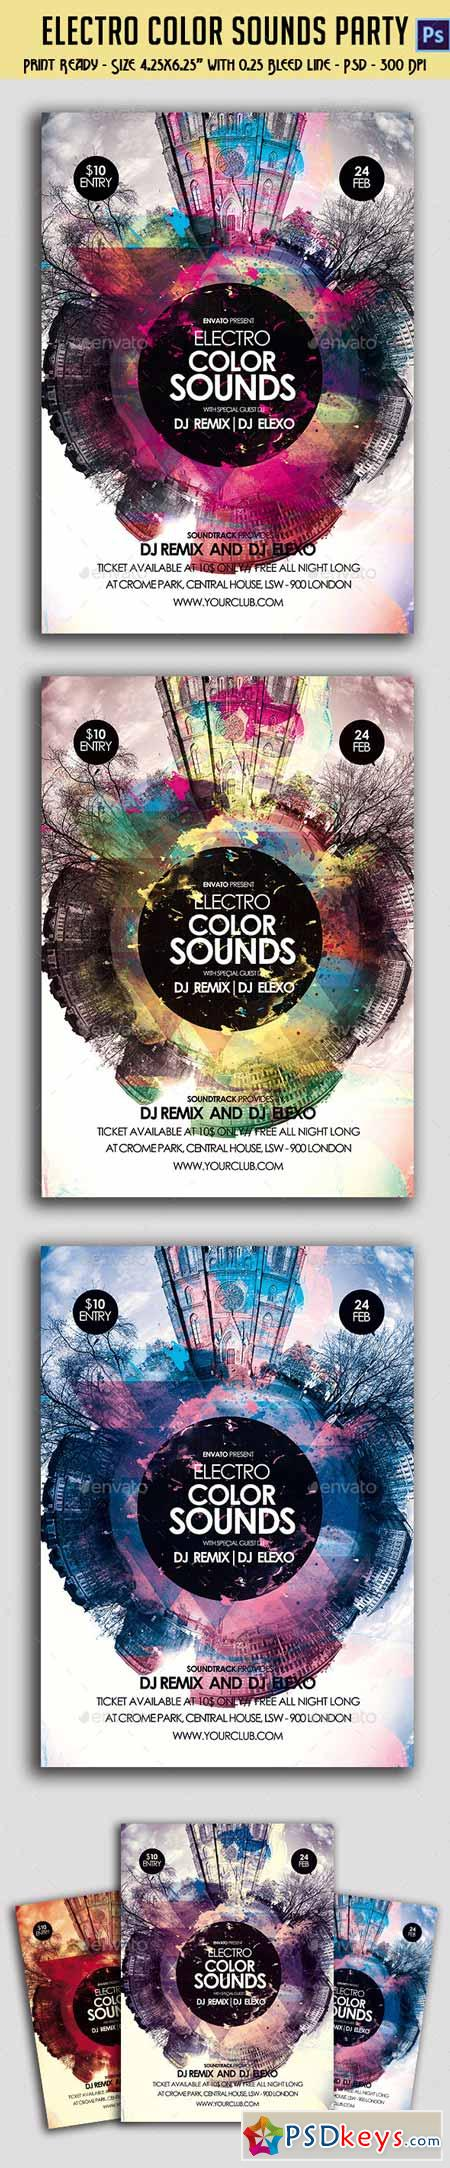 Electro Color Sounds Party Flyer 10379803